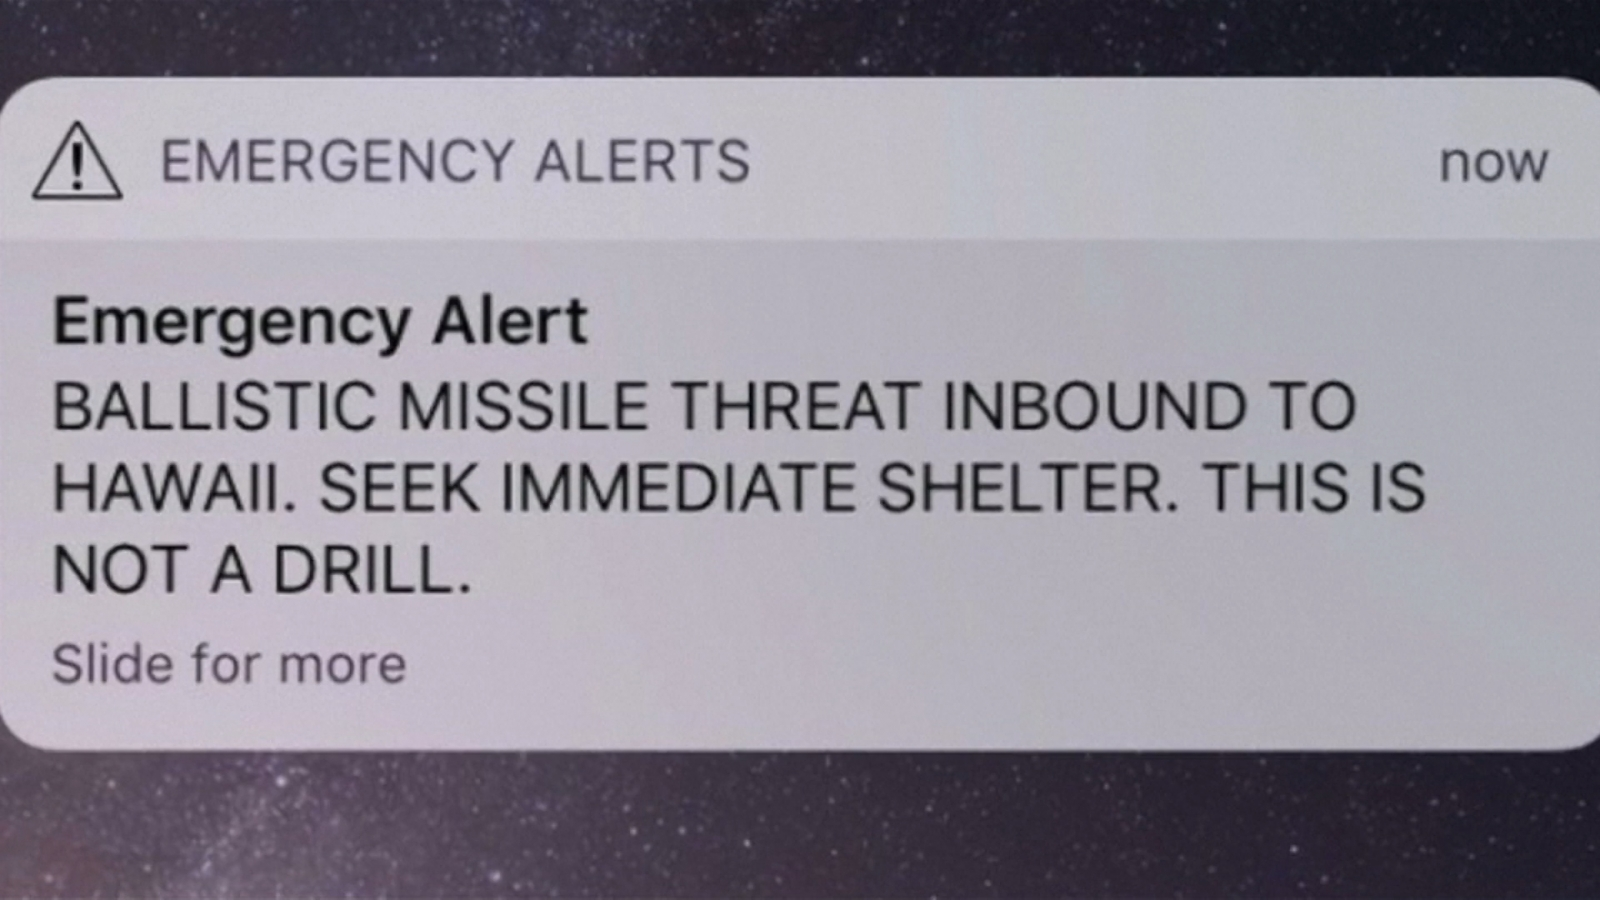 Hawaii residents fear for life as missile alert message is mistakenly sent out